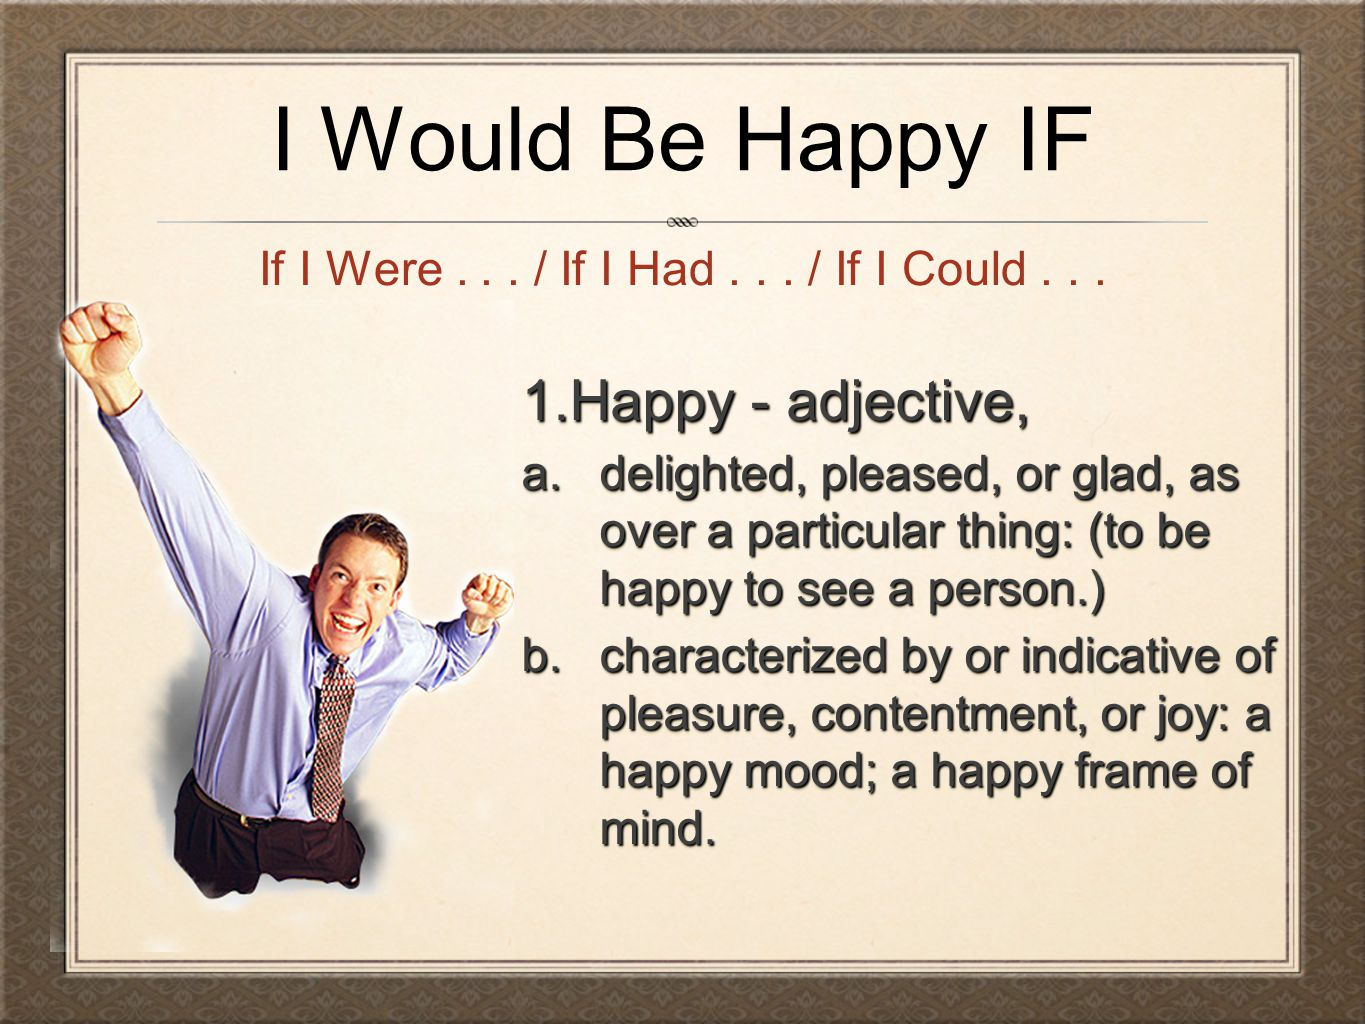 I Would Be Happy IF If I Were... / If I Had... / If I Could... 1.Happy - adjective, a.delighted, pleased, or glad, as over a particular thing: (to be